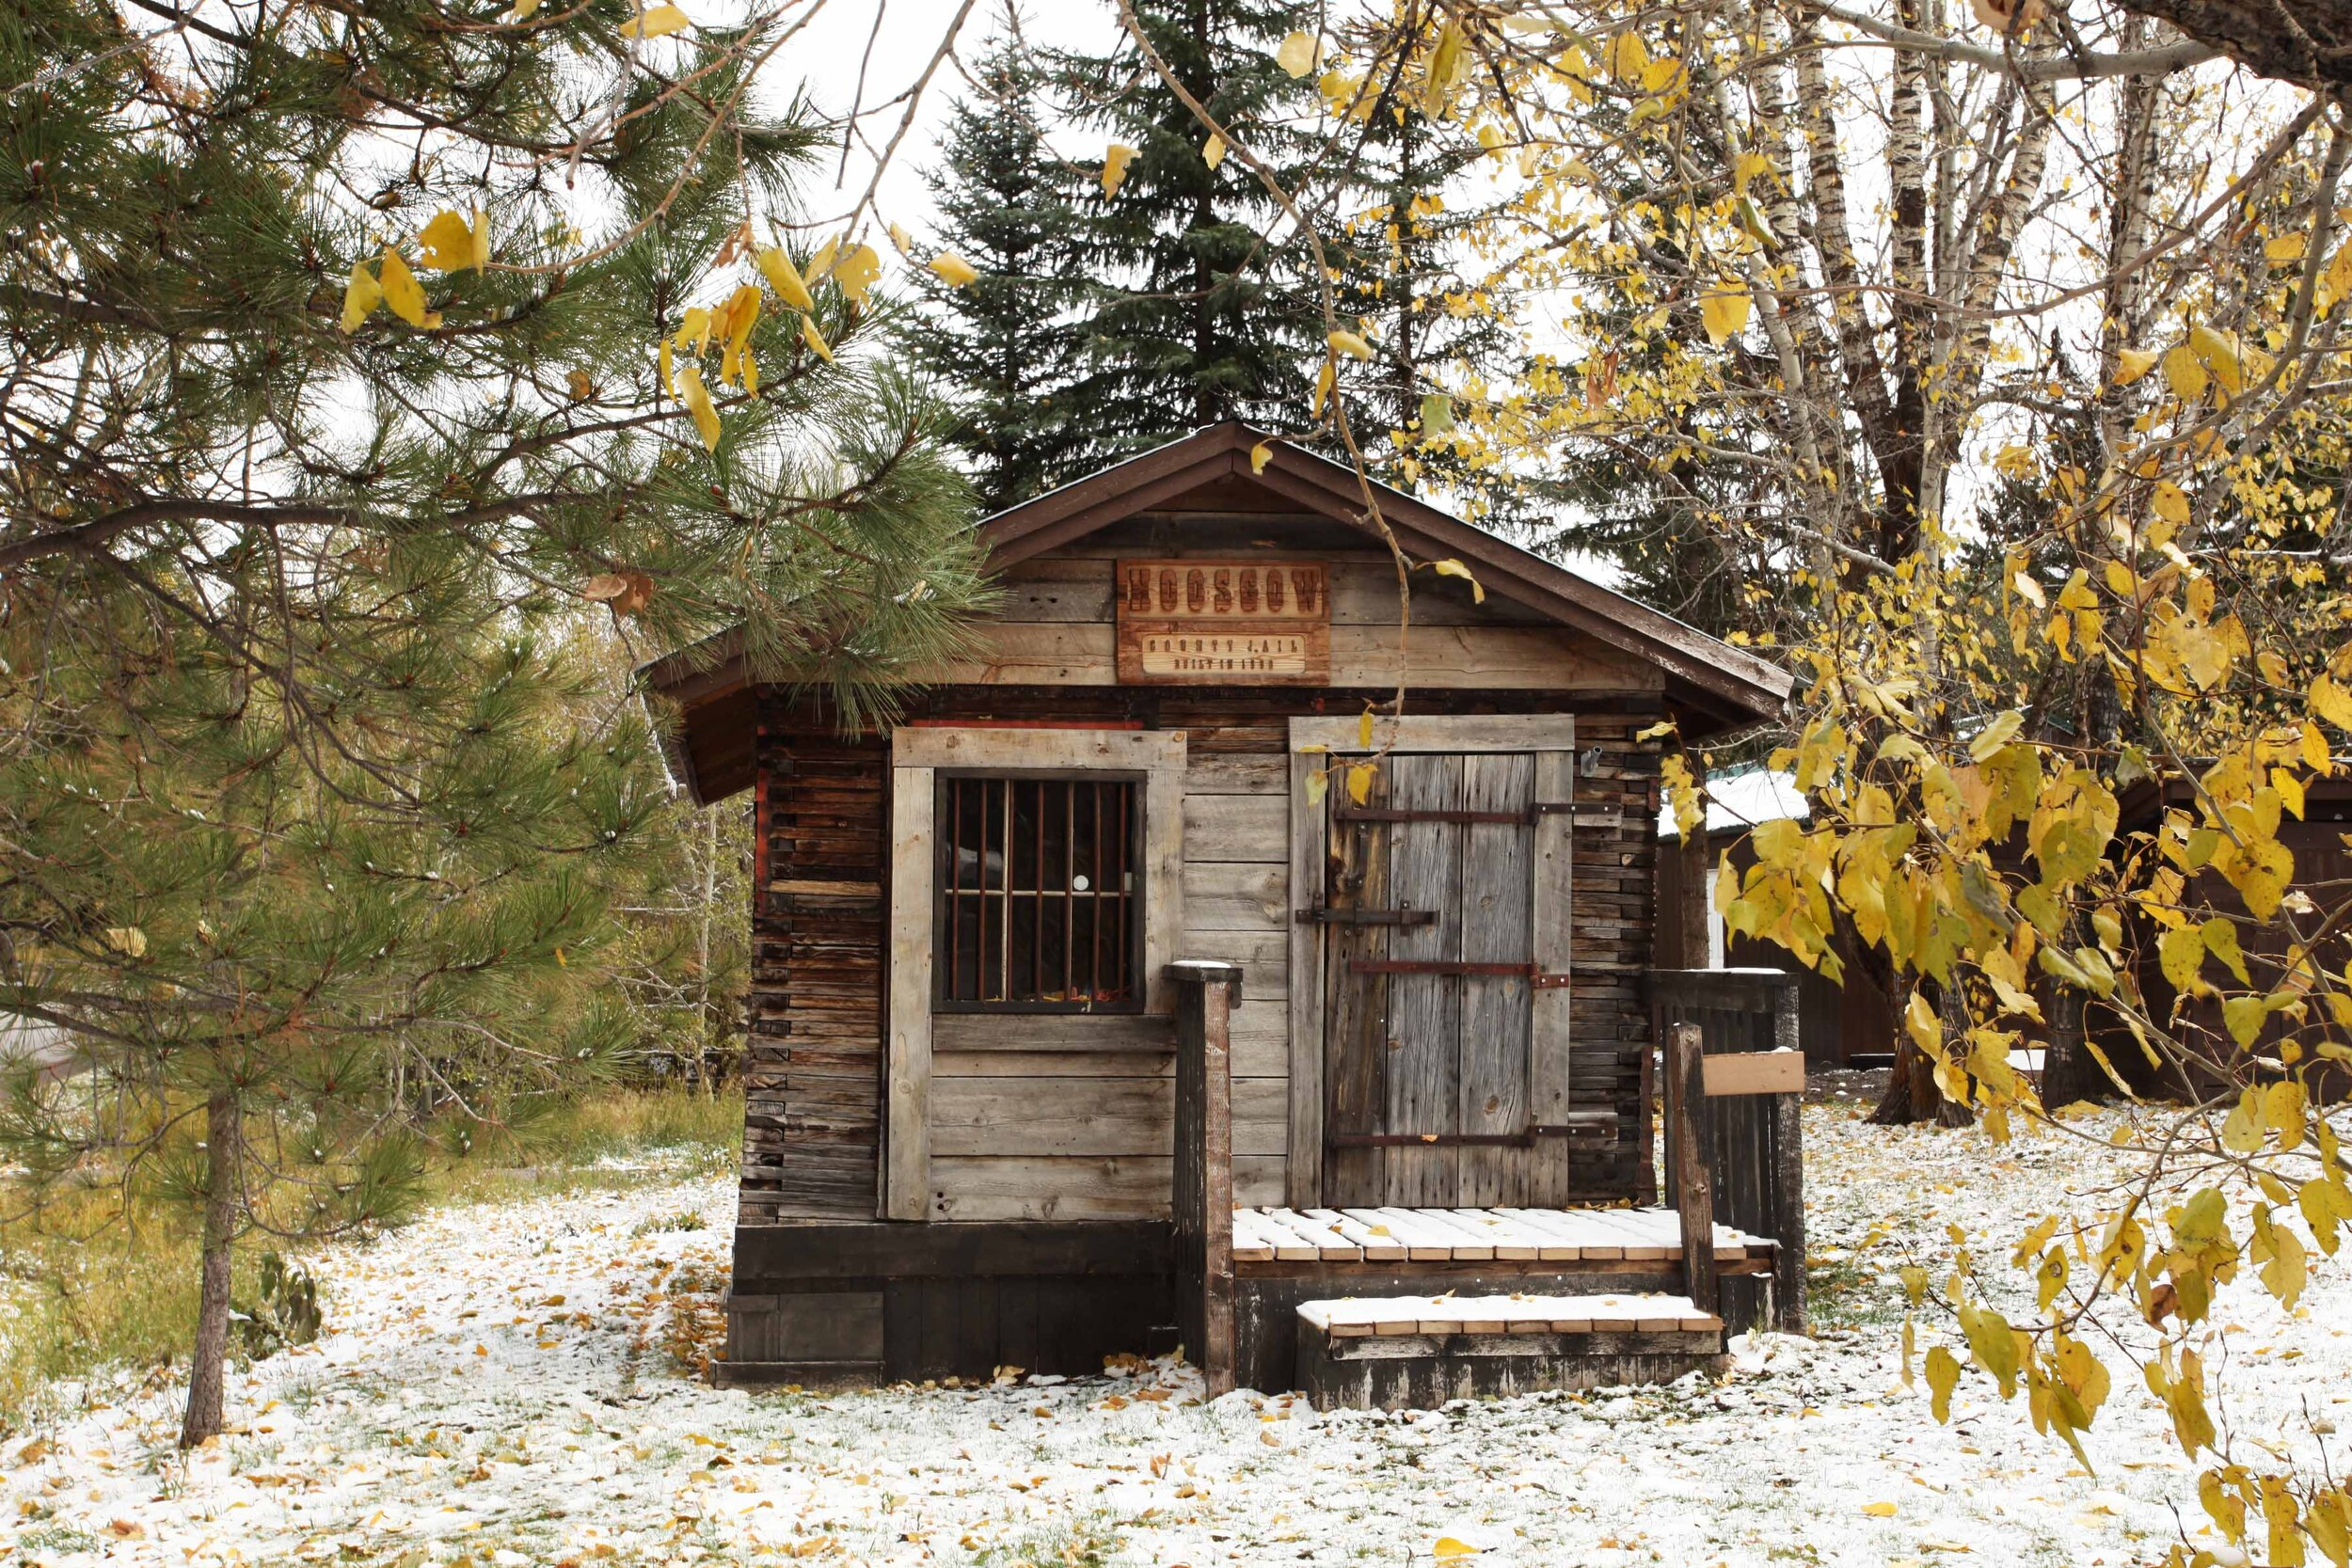 A well-preserved Hoosgow in Ovando, MT.